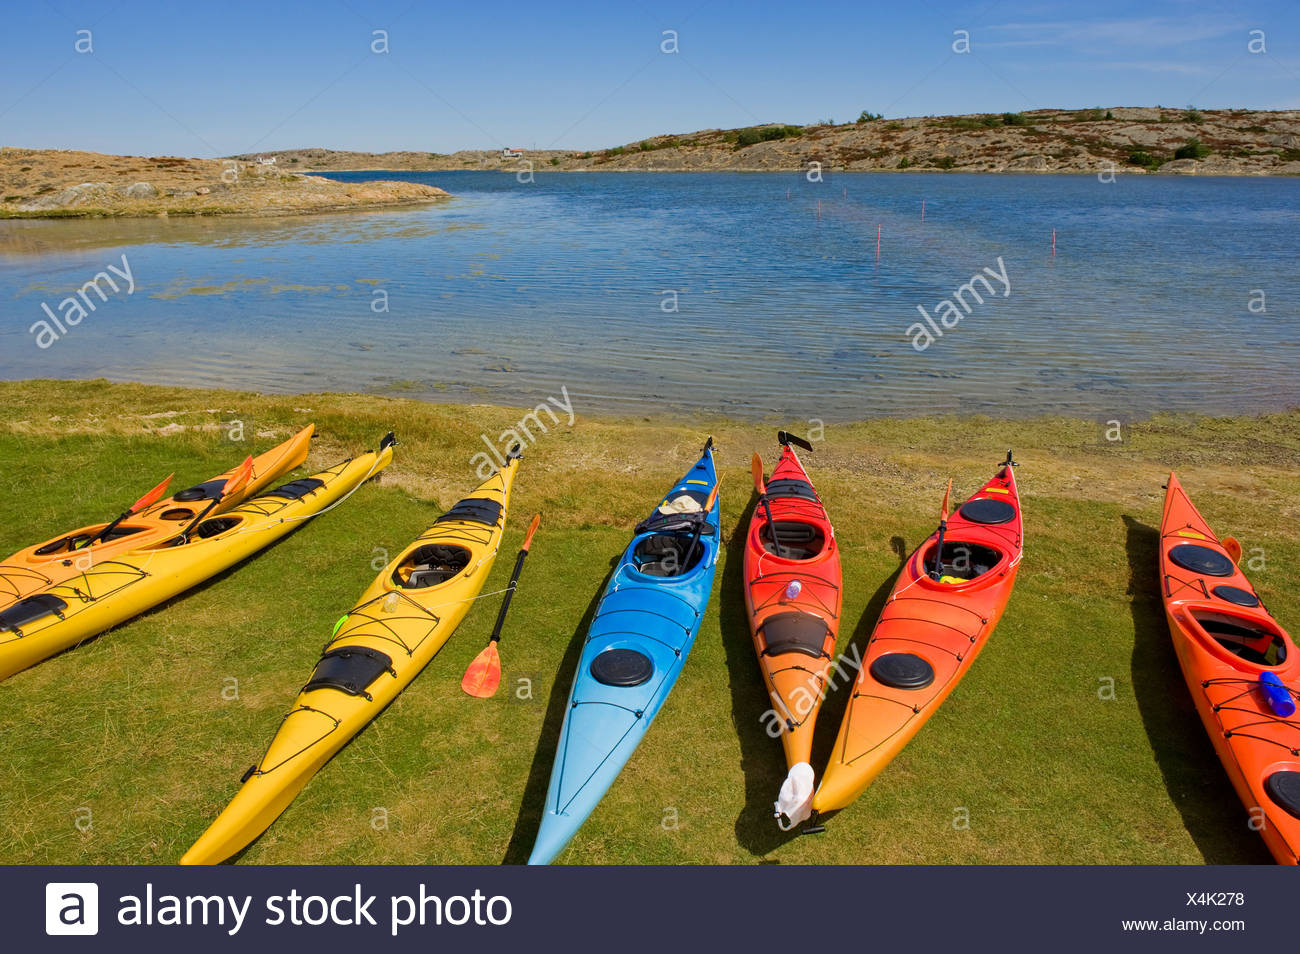 Several kayaks on grass by the calm sea Stock Photo